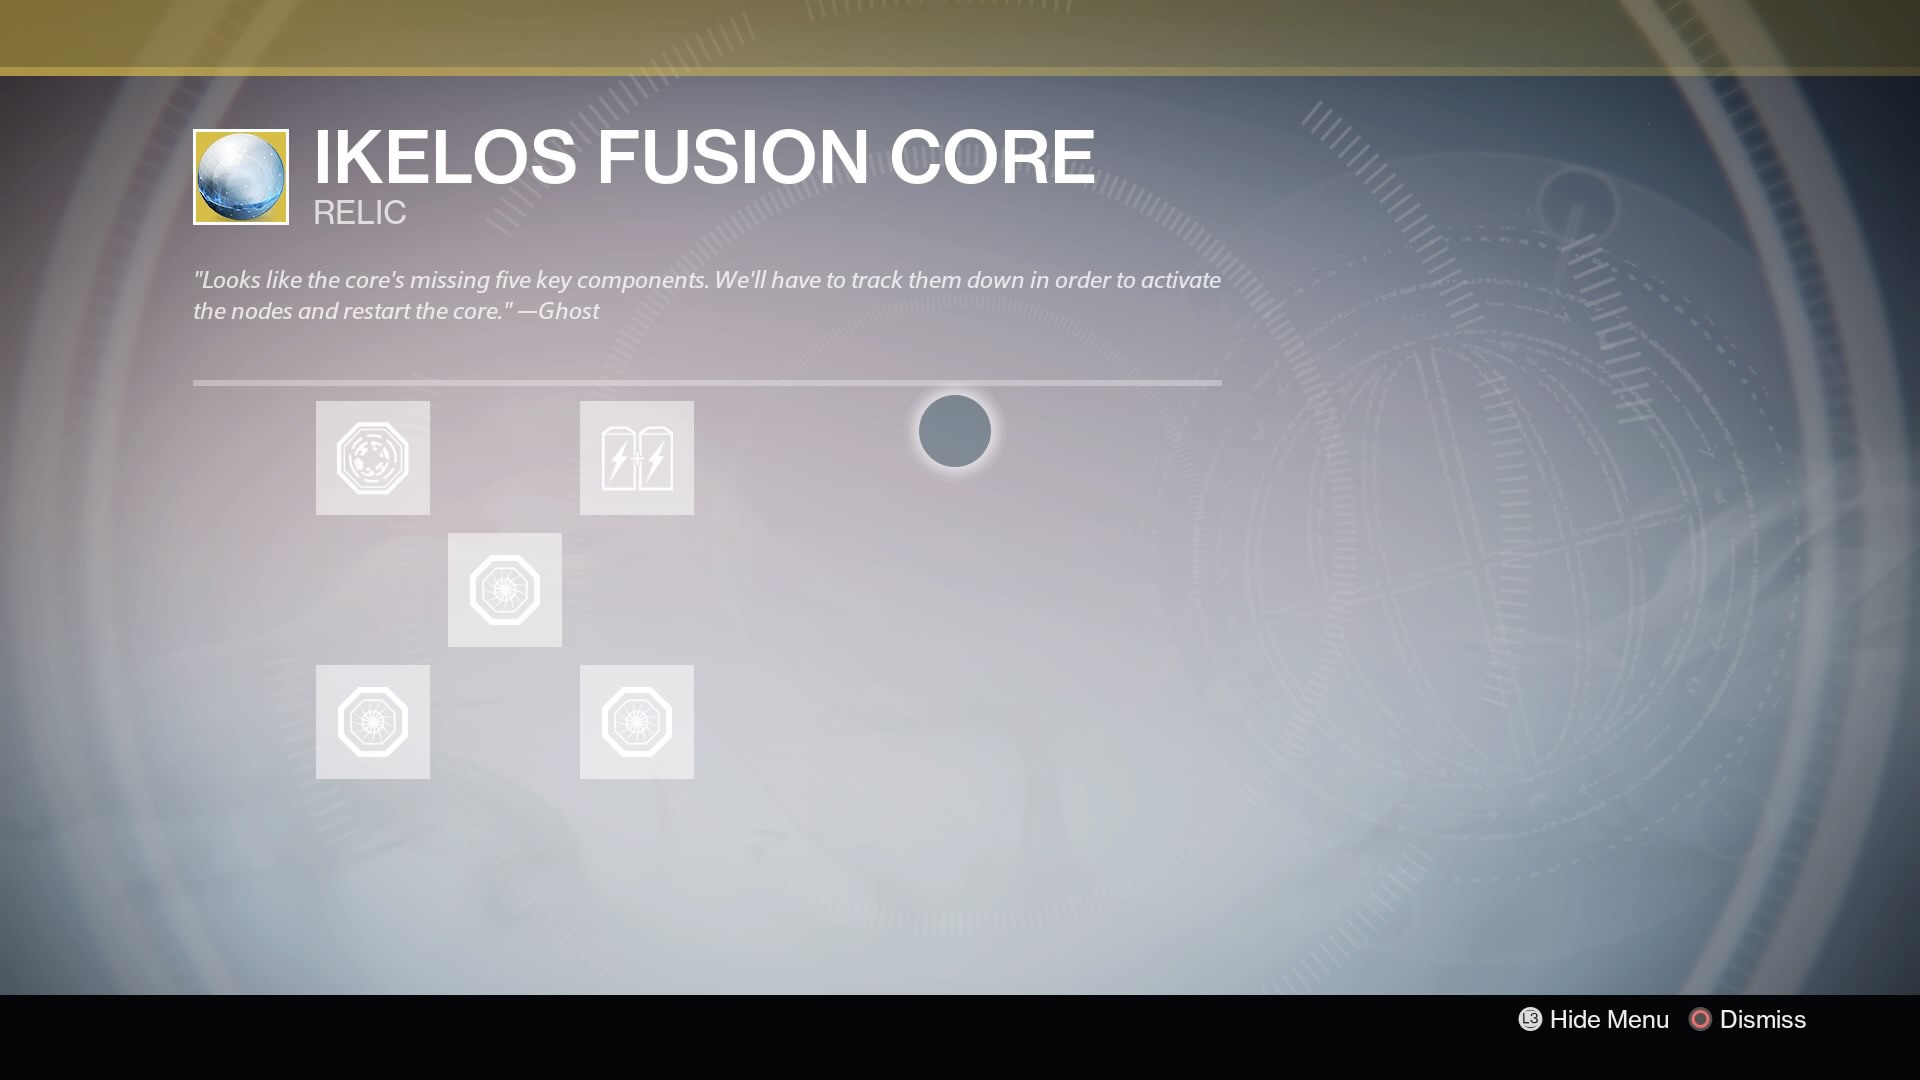 ikelos_fusion_core